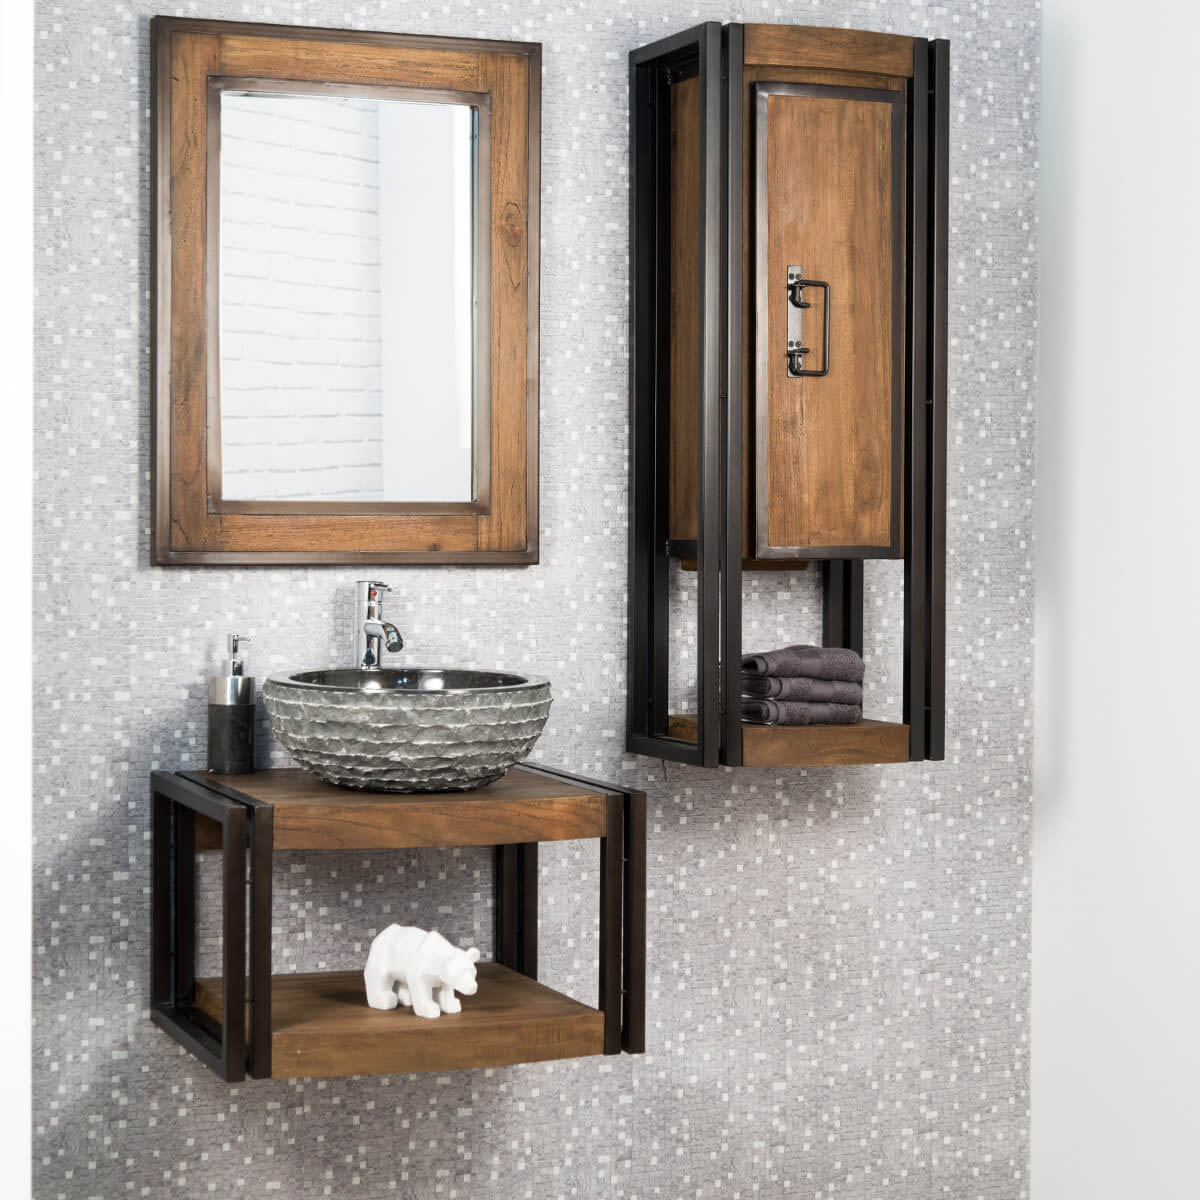 miroir salle de bain bois m tal 60x80 cm wanda collection. Black Bedroom Furniture Sets. Home Design Ideas